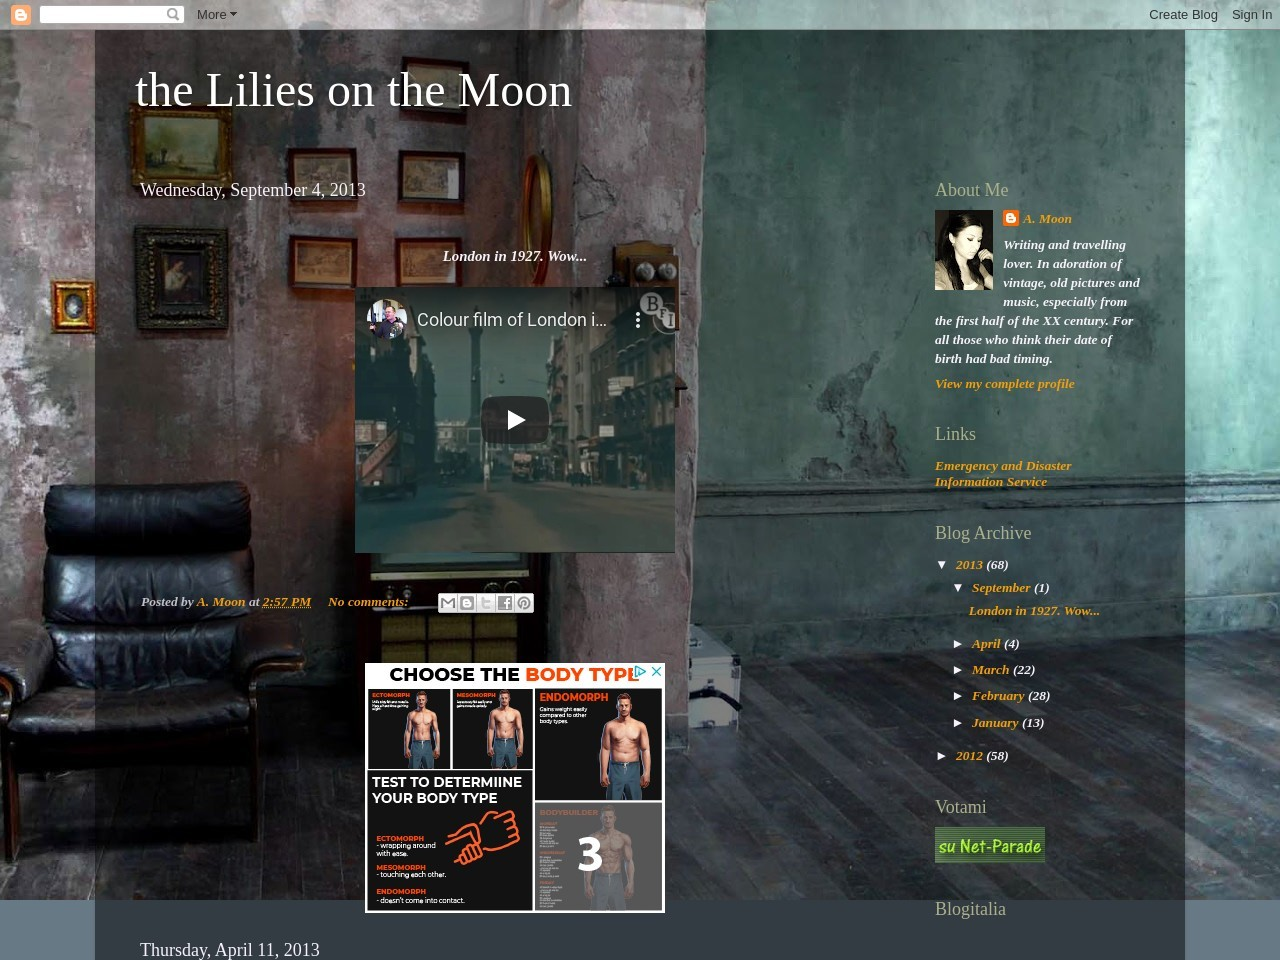 the-lilies-on-the-moon